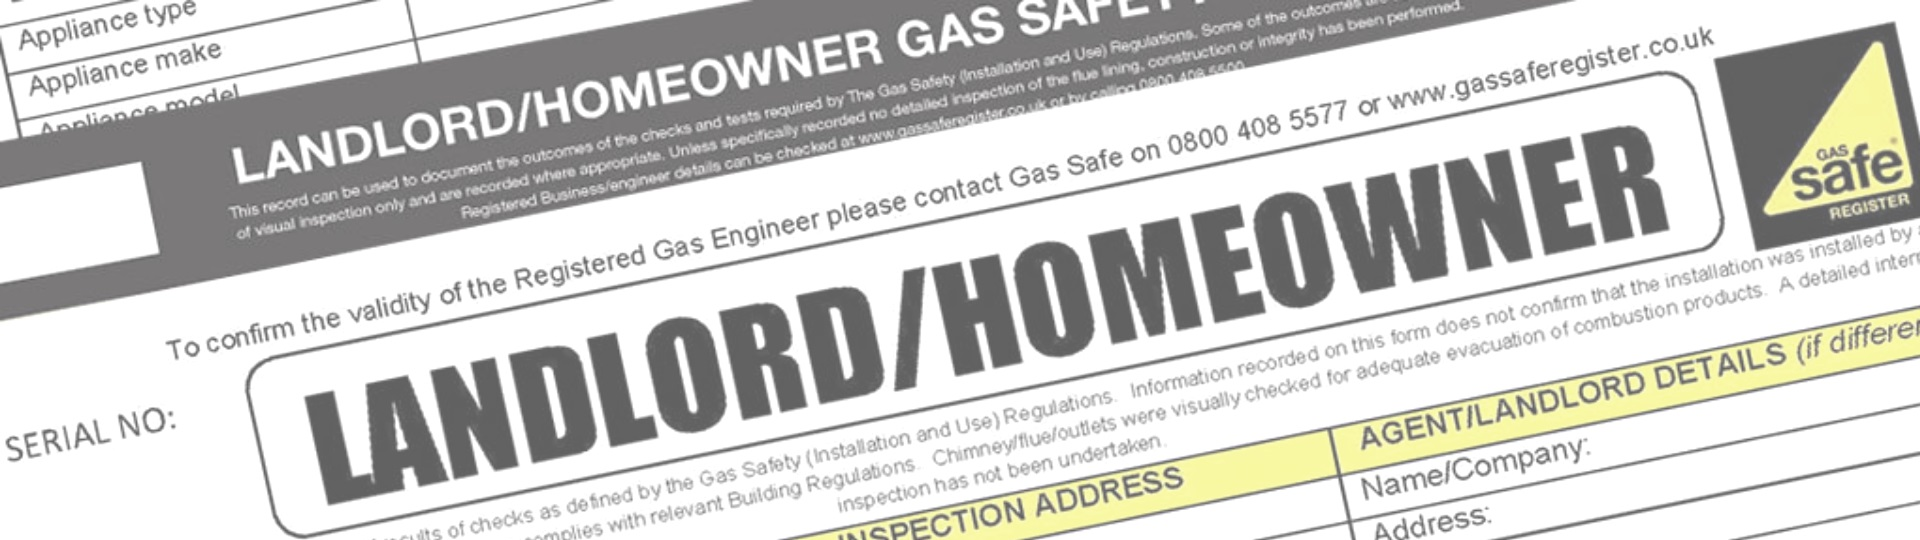 Gas Saftey Certificates Knowle